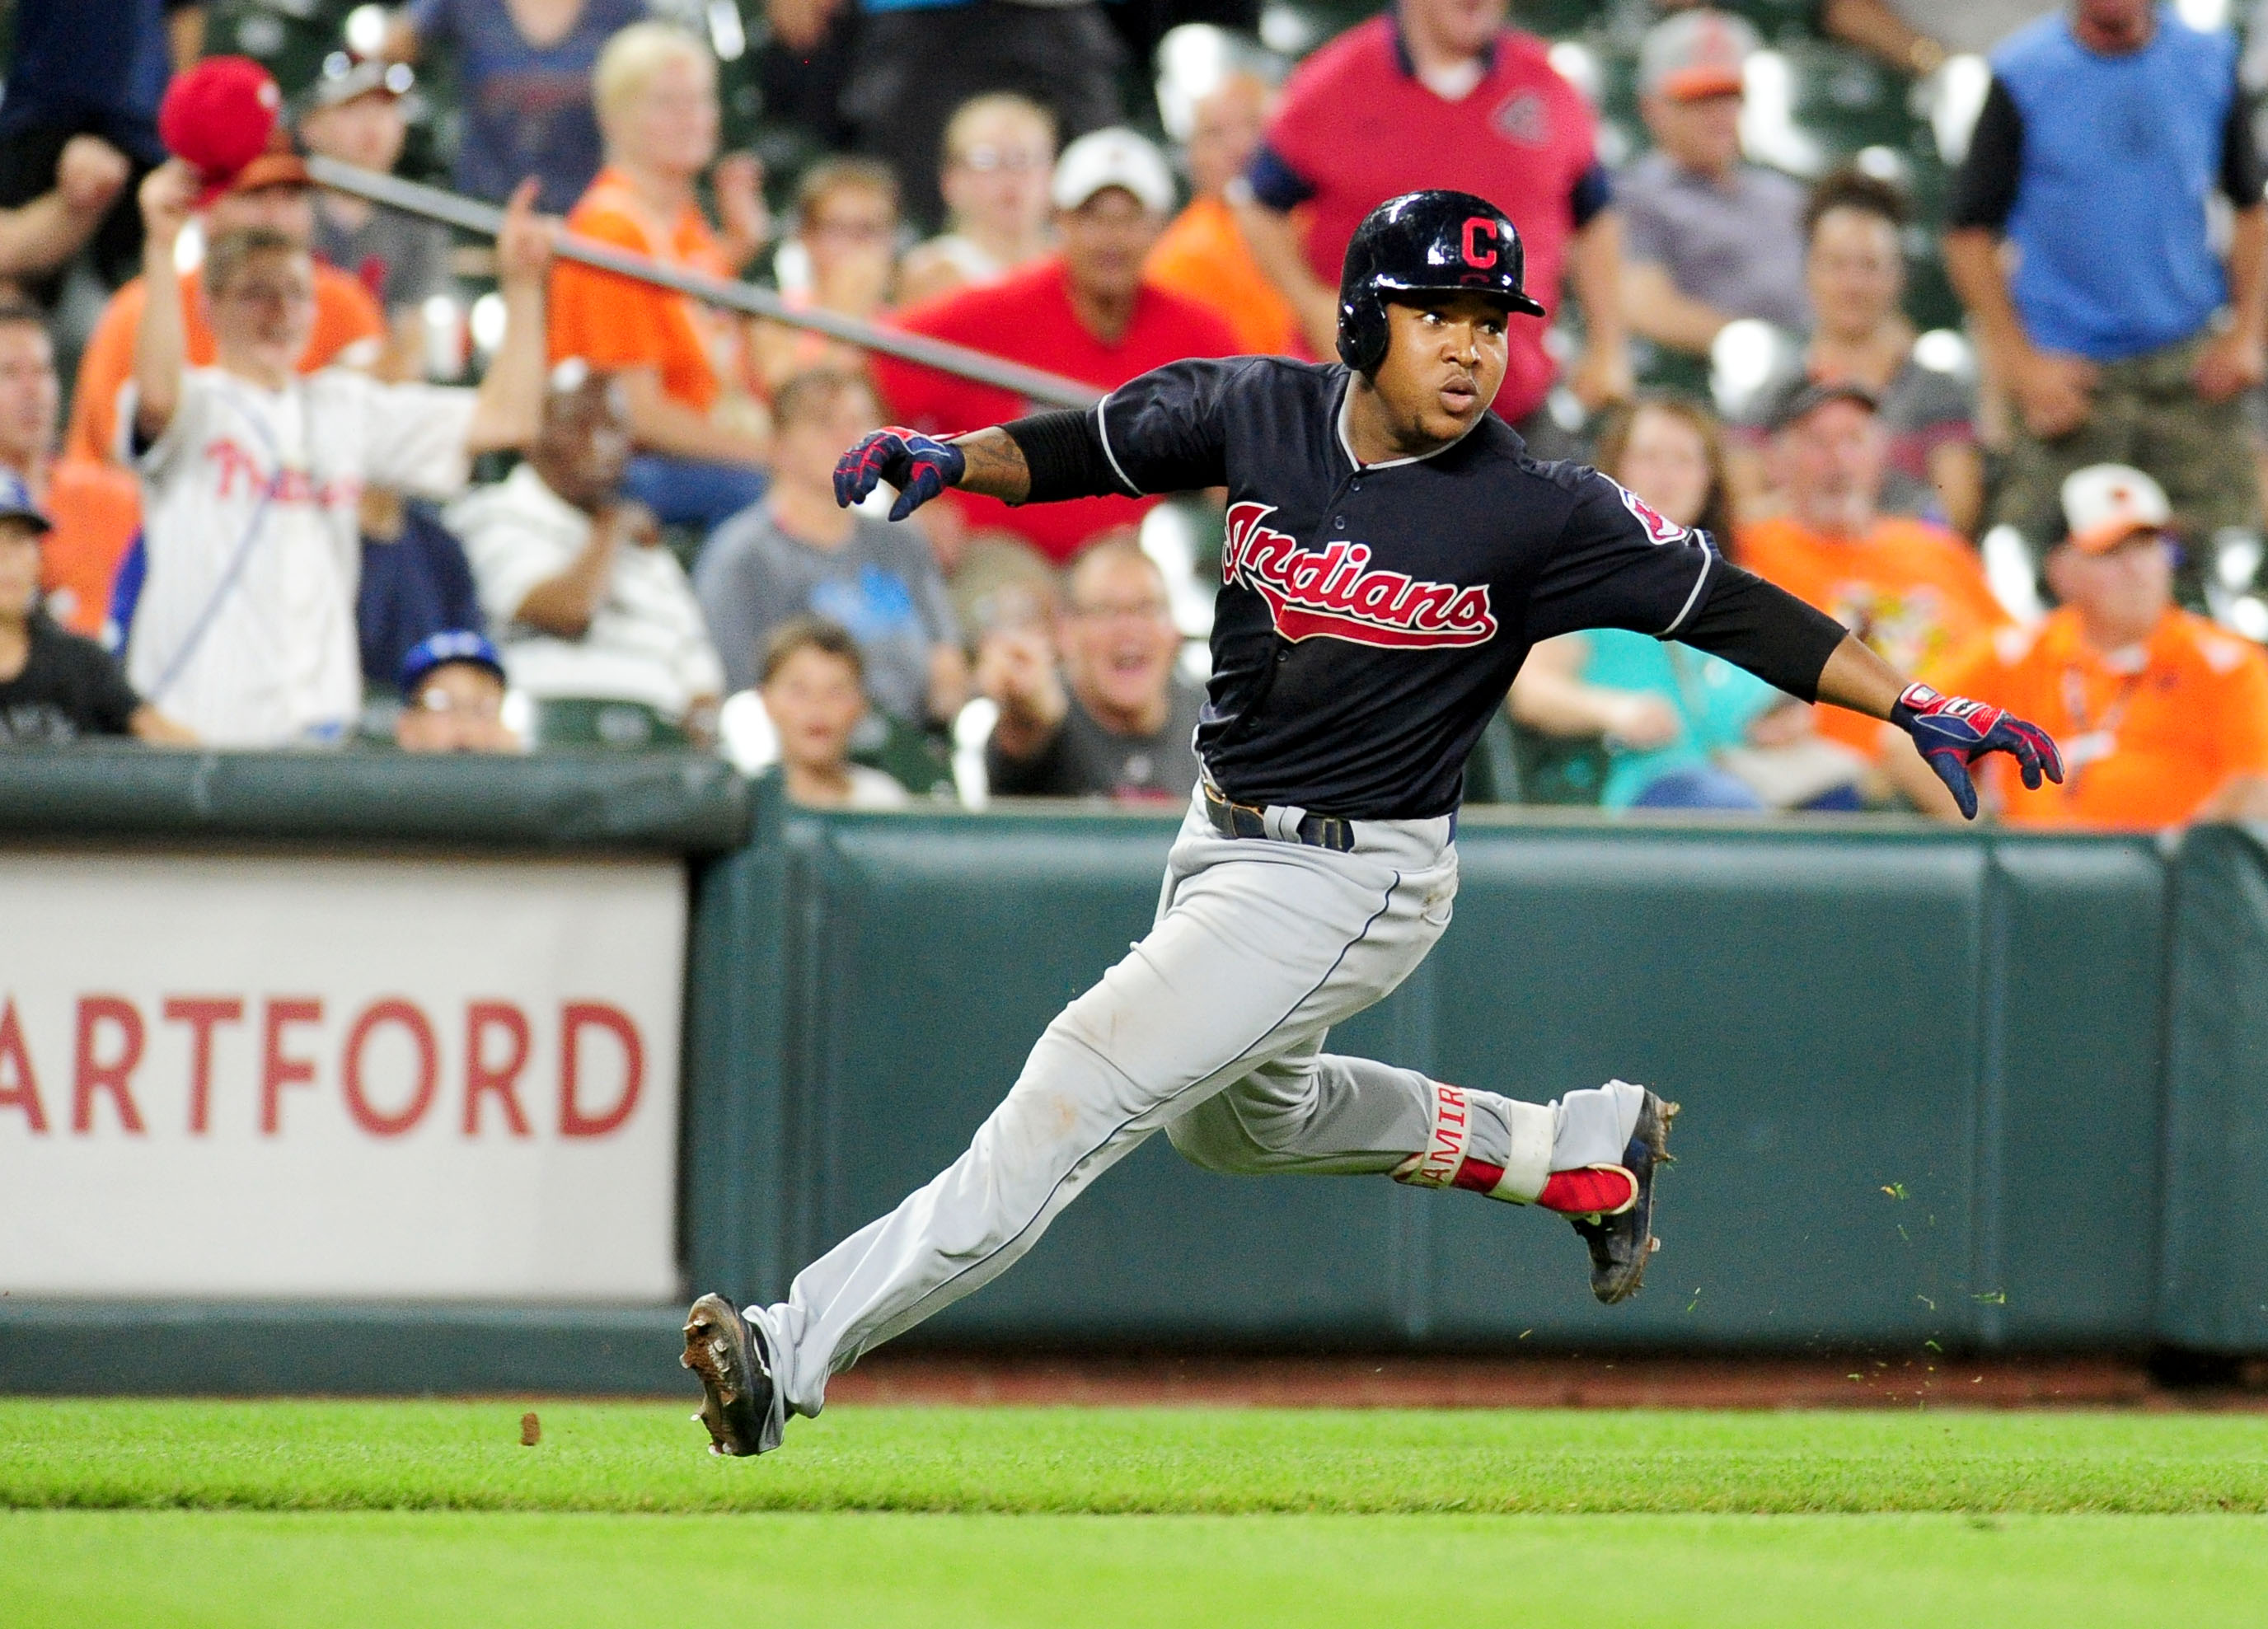 10126845-mlb-cleveland-indians-at-baltimore-orioles